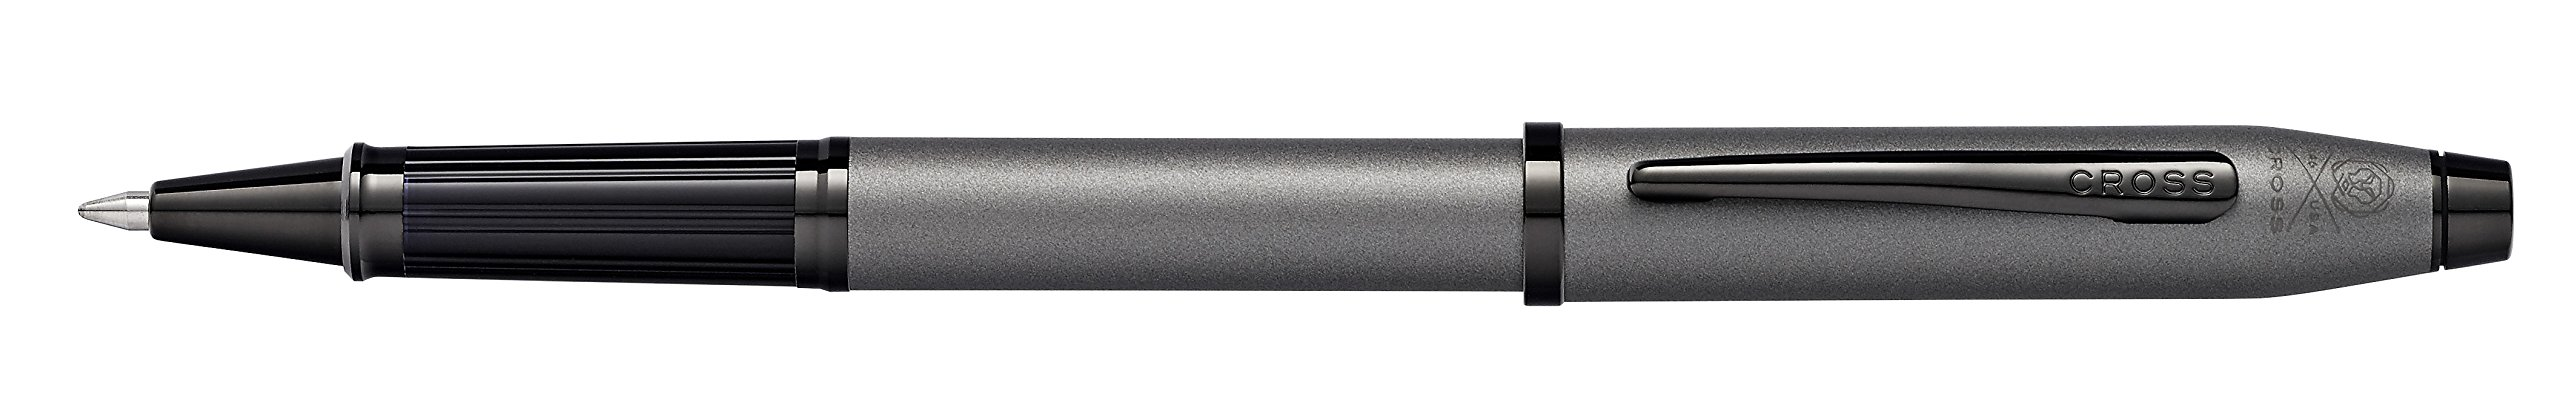 Cross Century II Gunmetal Gray Rollerball Pen with Polished Black PVD Appointments by Cross (Image #4)